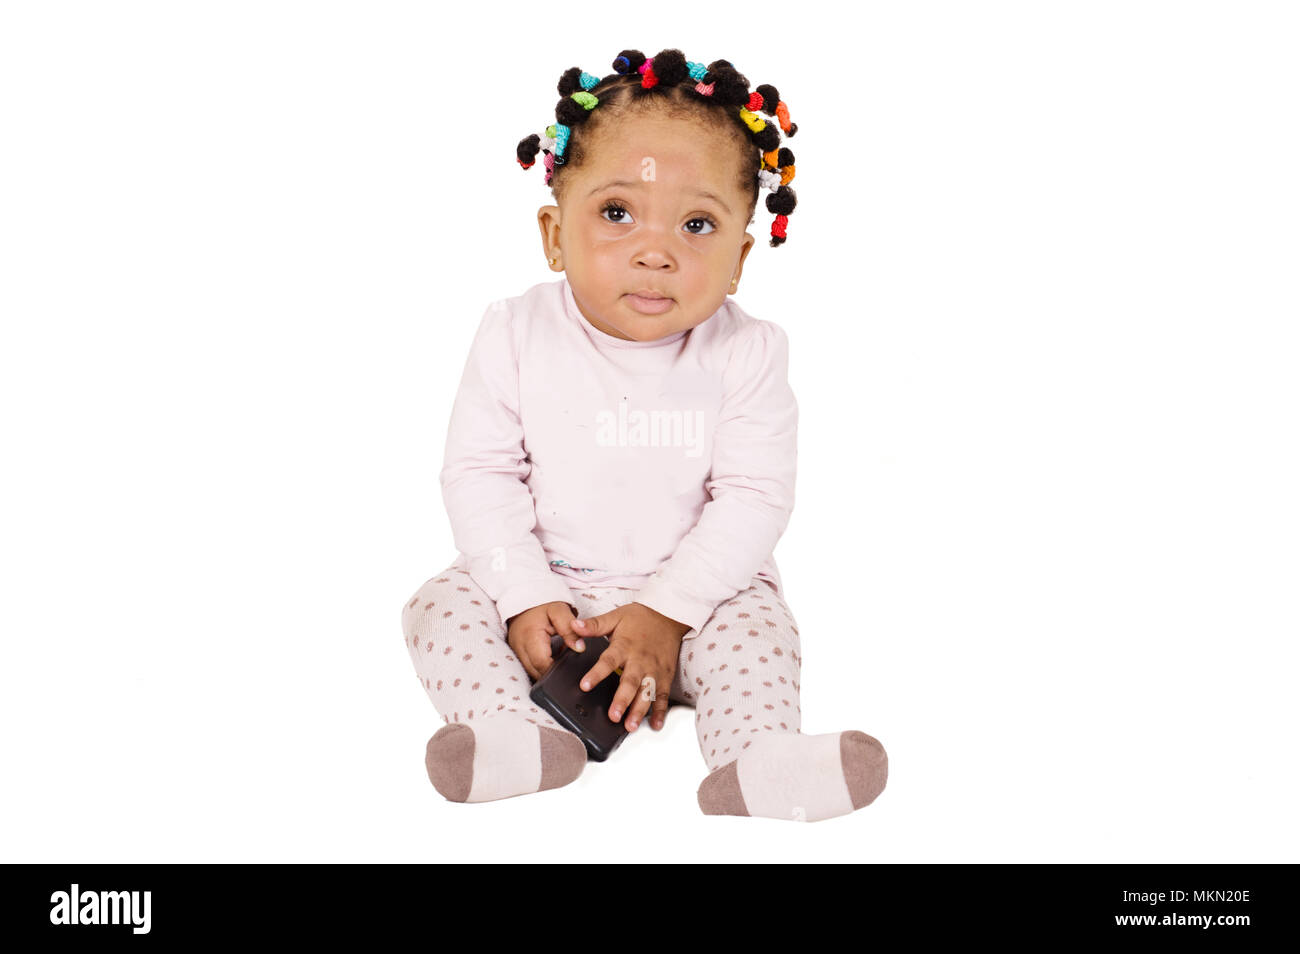 Pretty baby sitting and playing with a cell phone on white background - Stock Image